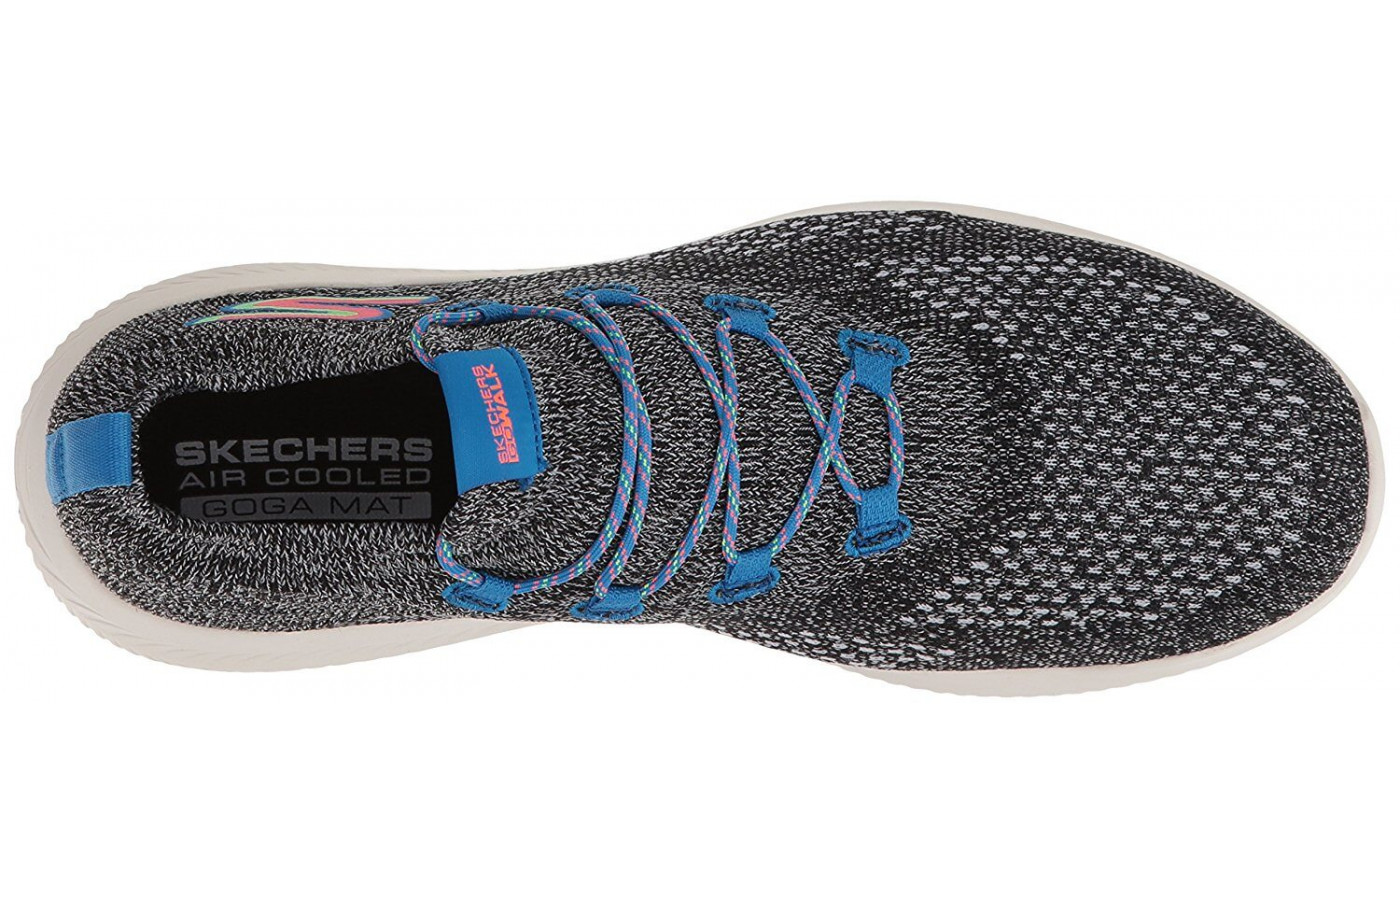 A top view of the Skechers GoWalk Revolution Ultra.